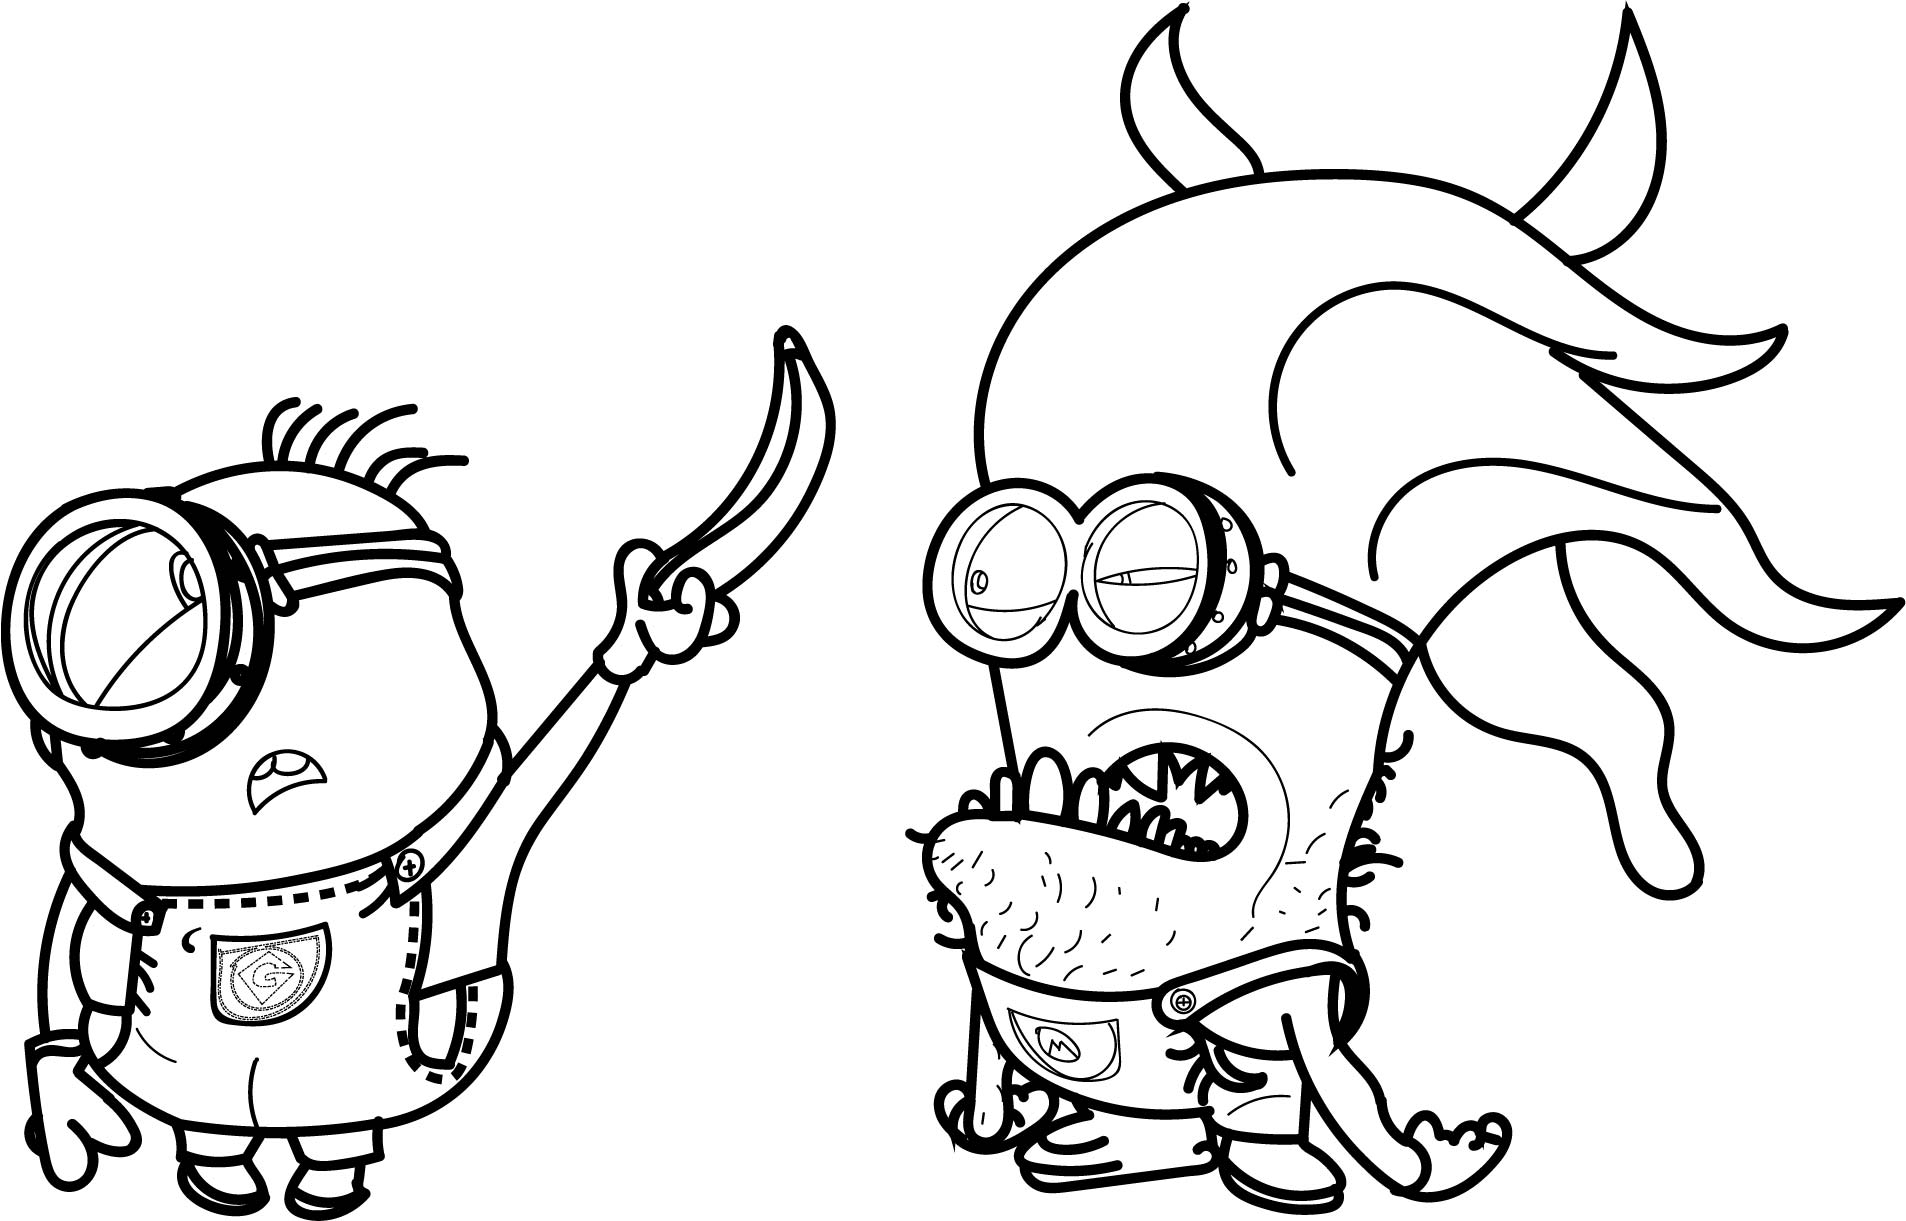 Minion Creature Banana Catch Coloring Page